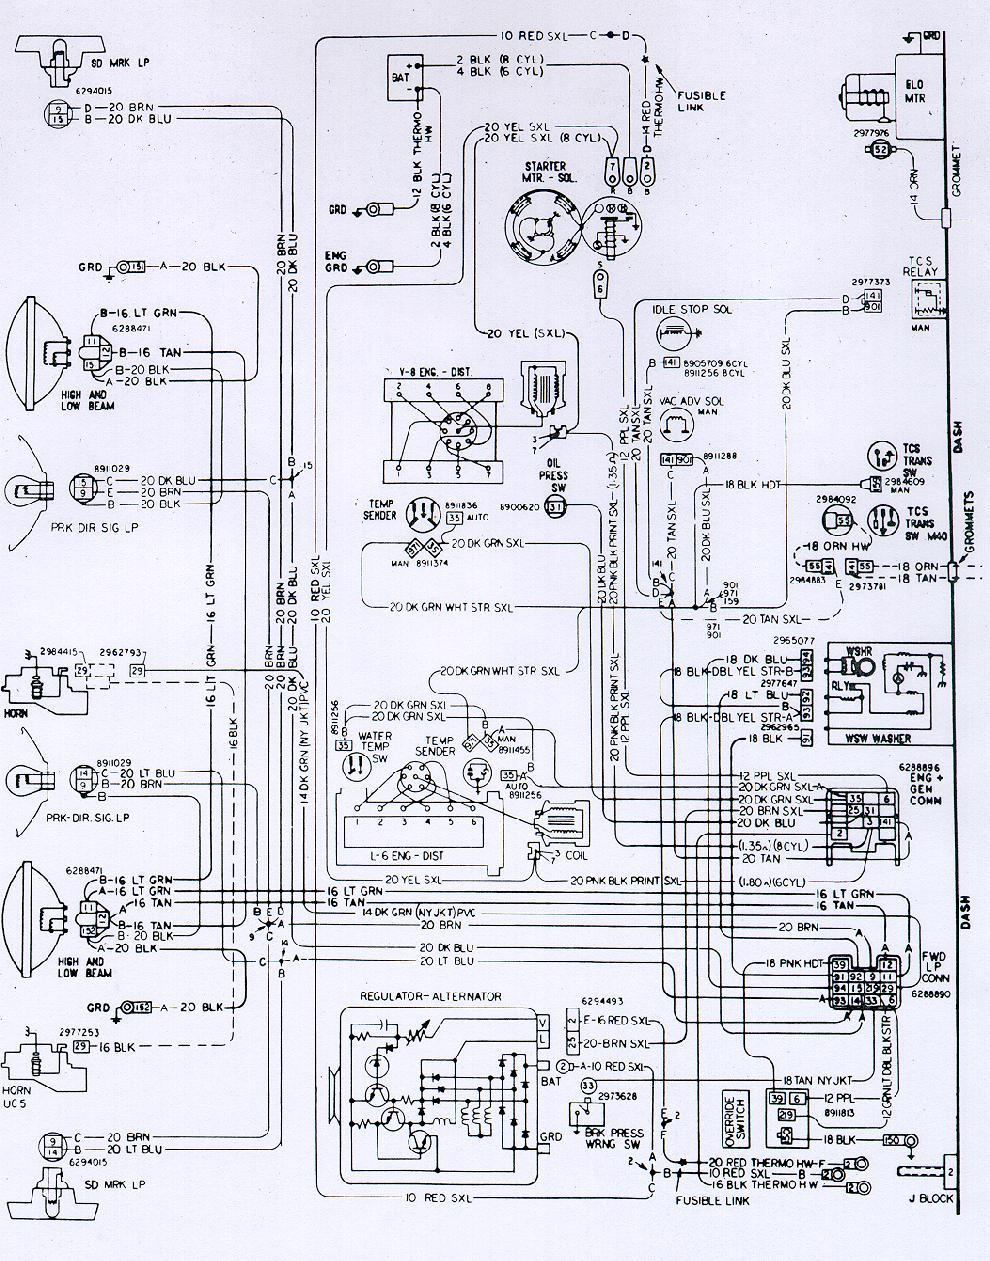 hight resolution of 1980 trans am engine electrical diagram box wiring diagram1980 trans am engine electrical diagram wiring library